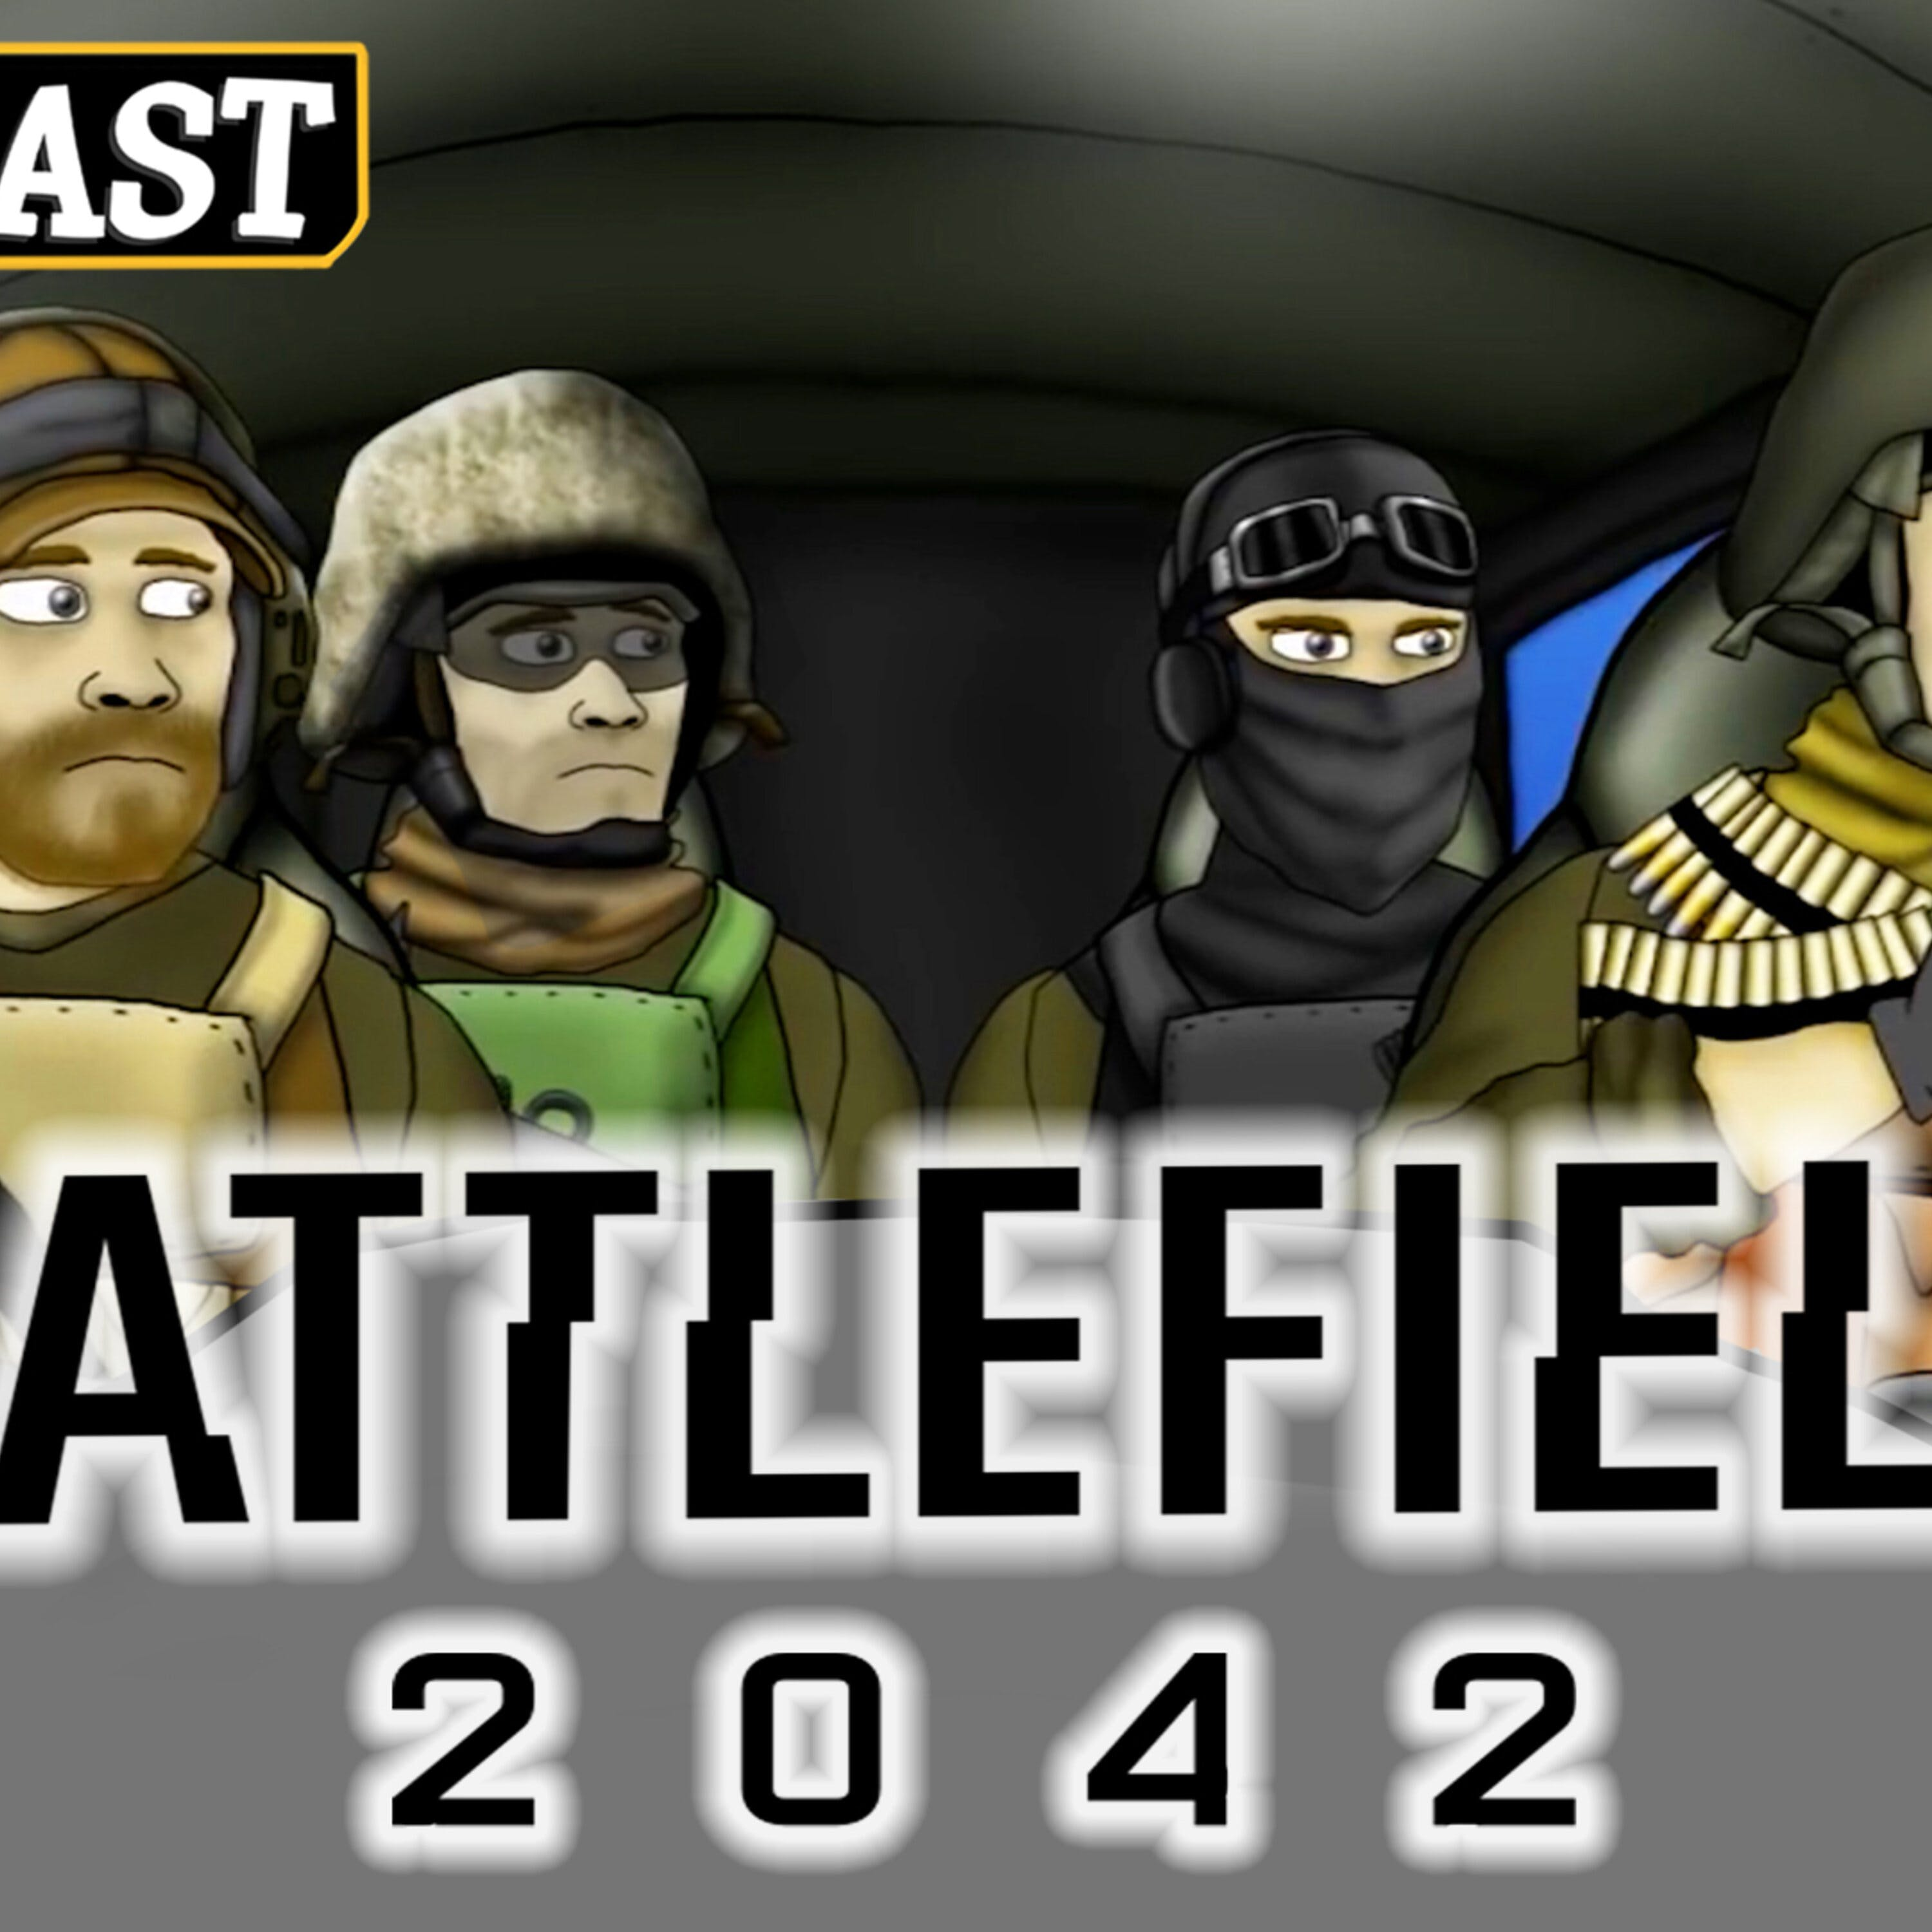 We React to the Battlefield 2042 Gameplay trailer!!!